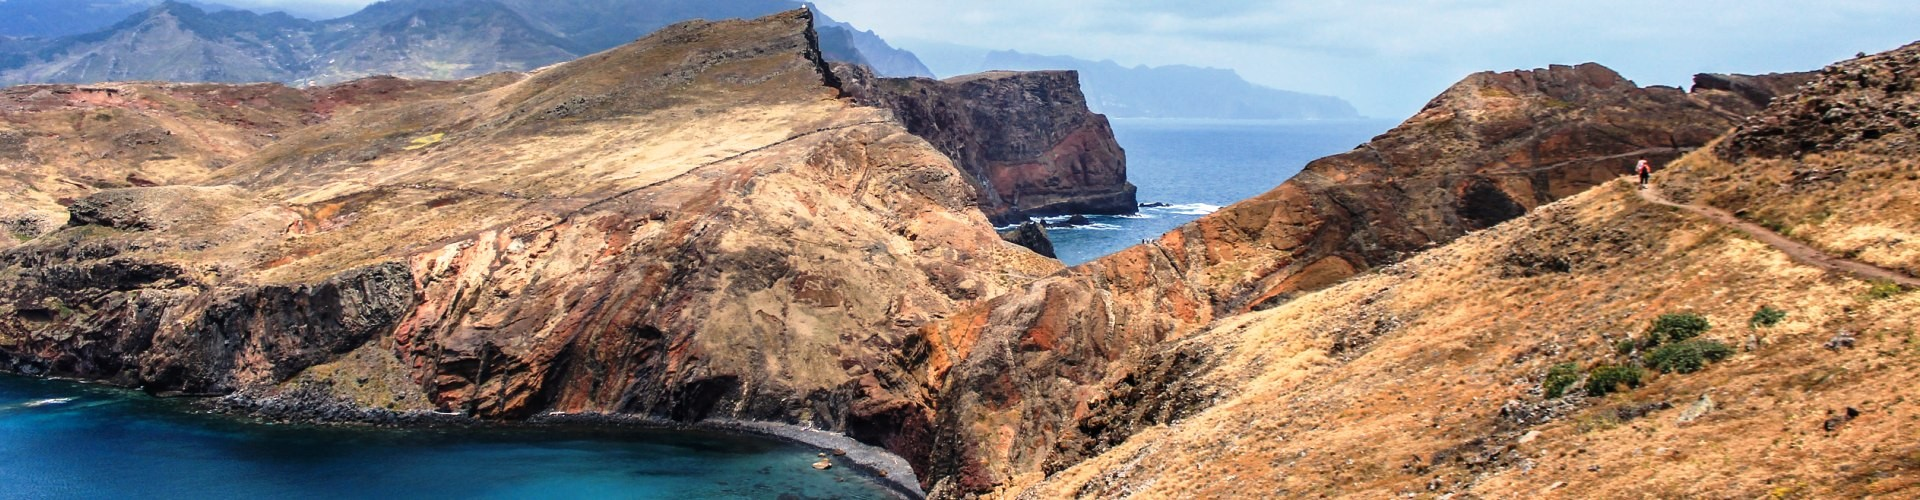 Baia d'abra easy trail tour in Madeira Island